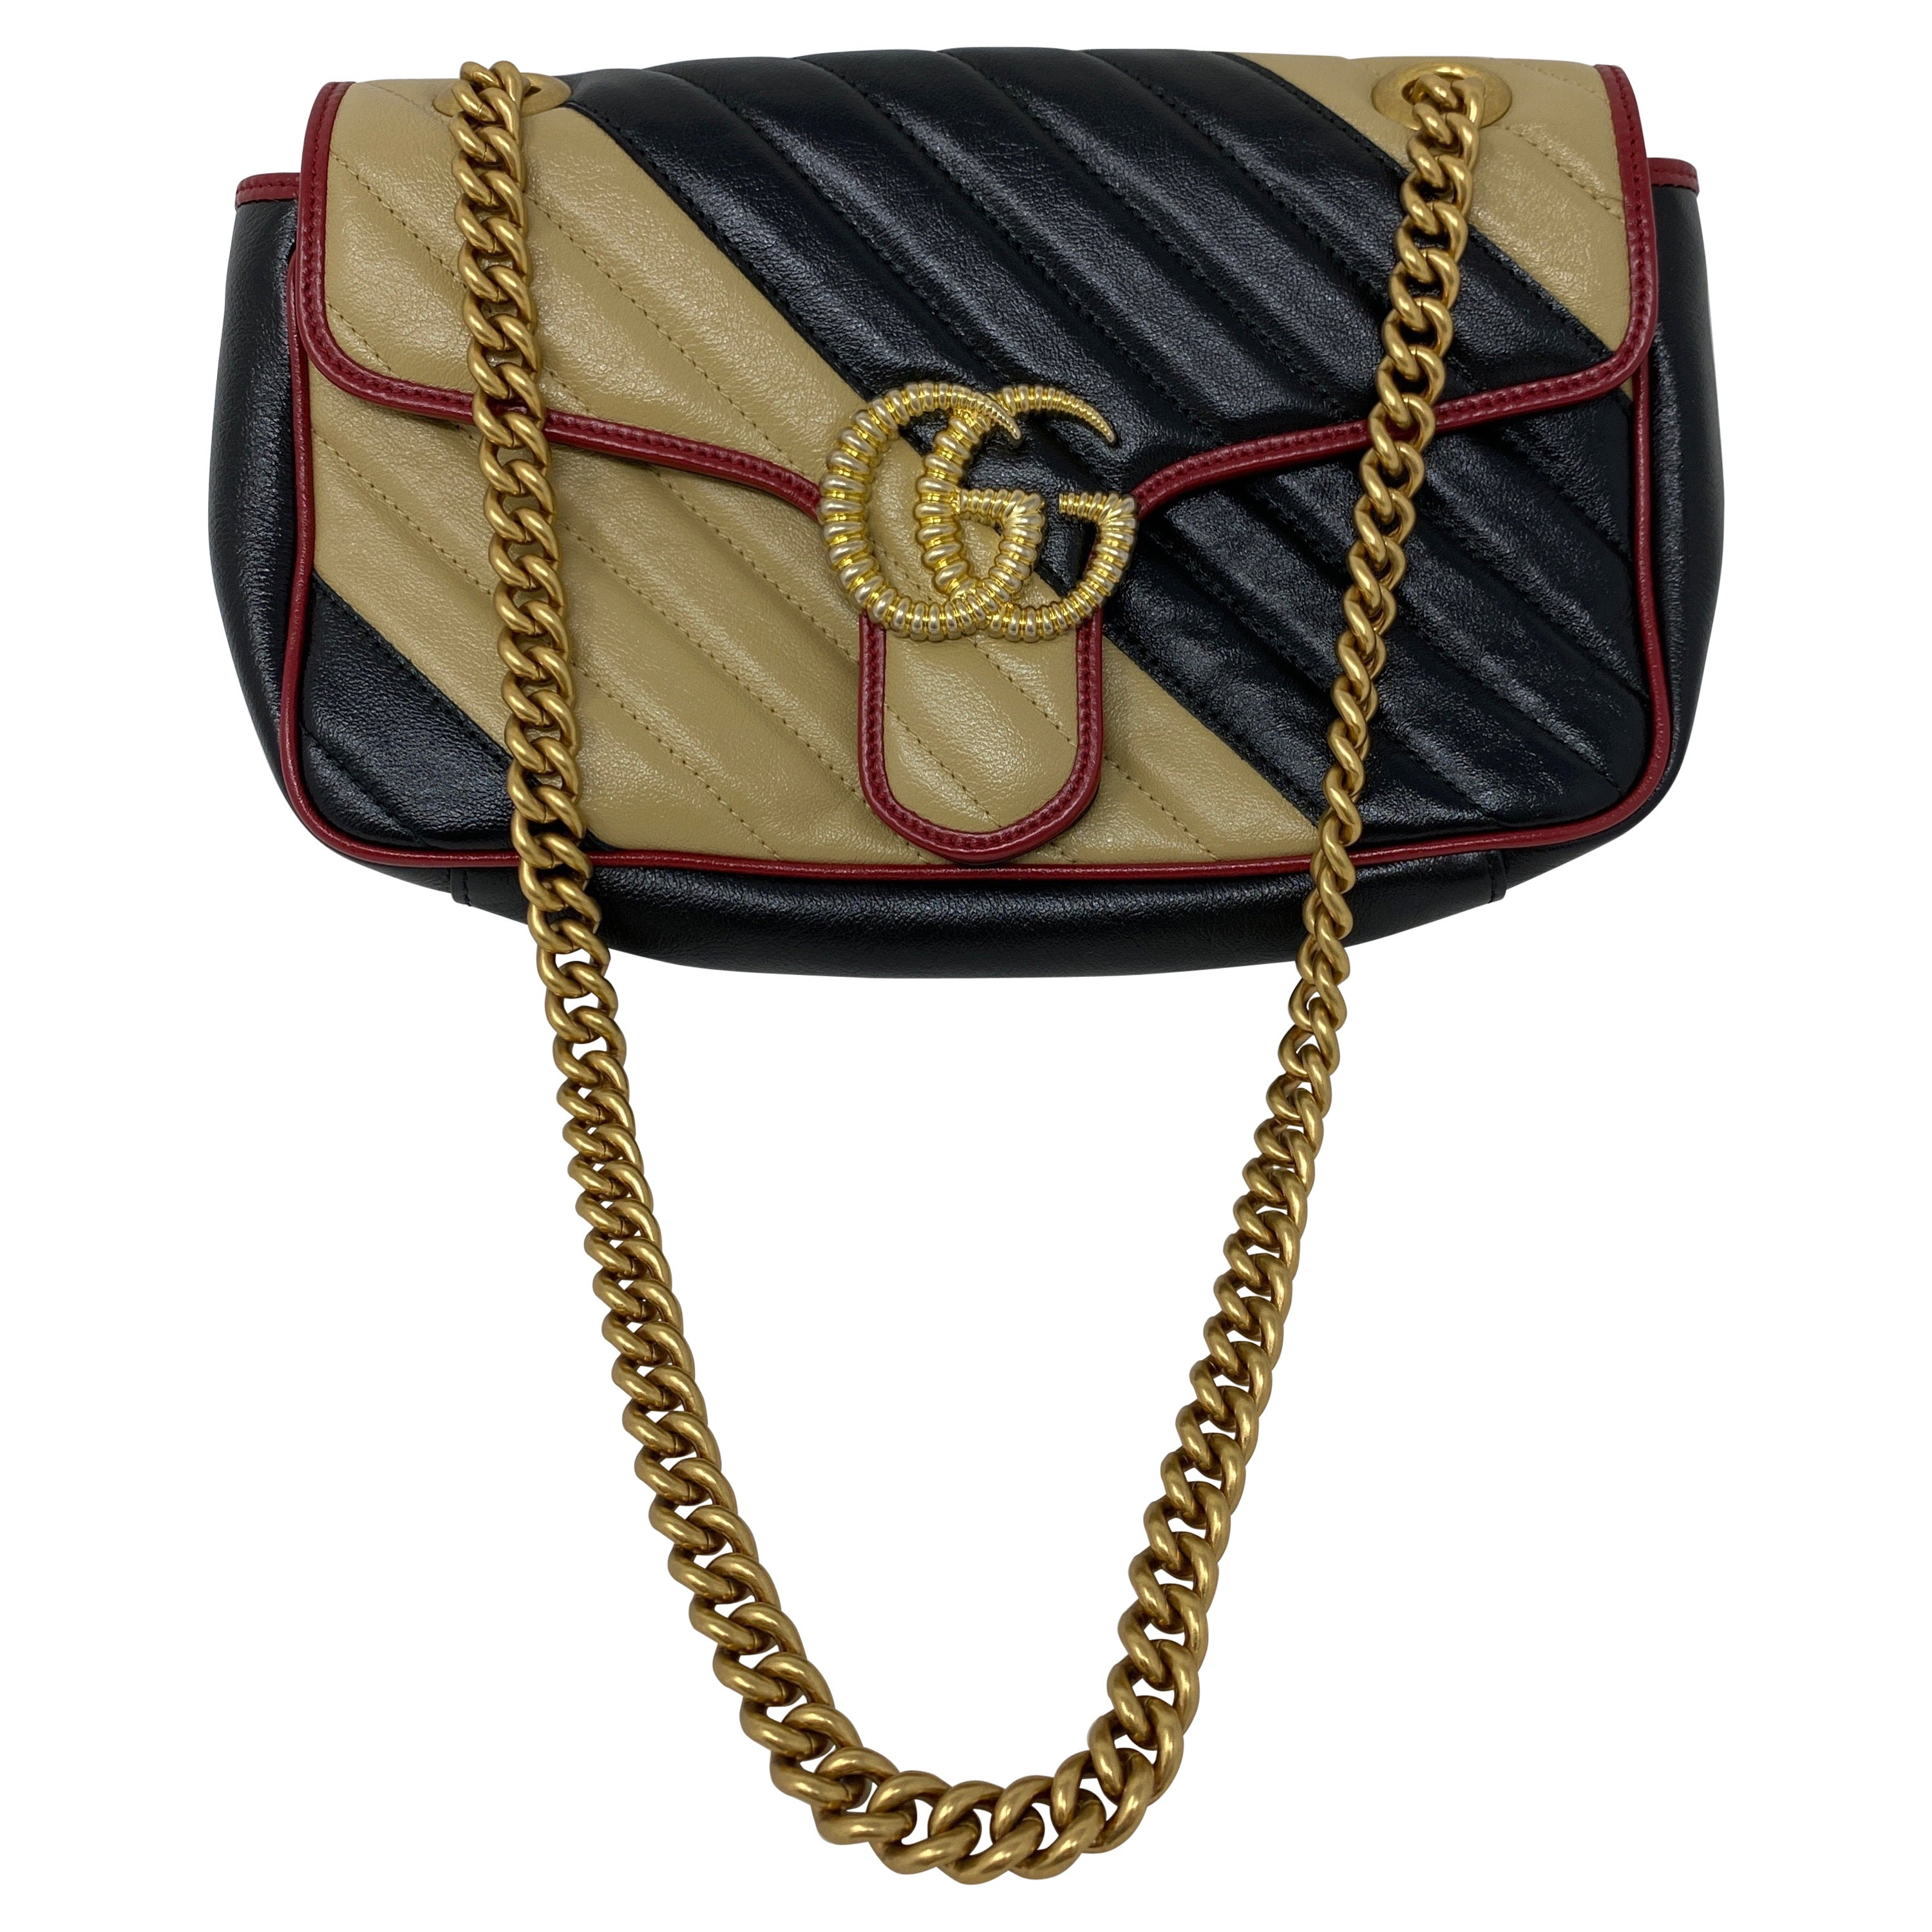 Gucci Red and Black Marmont Bag